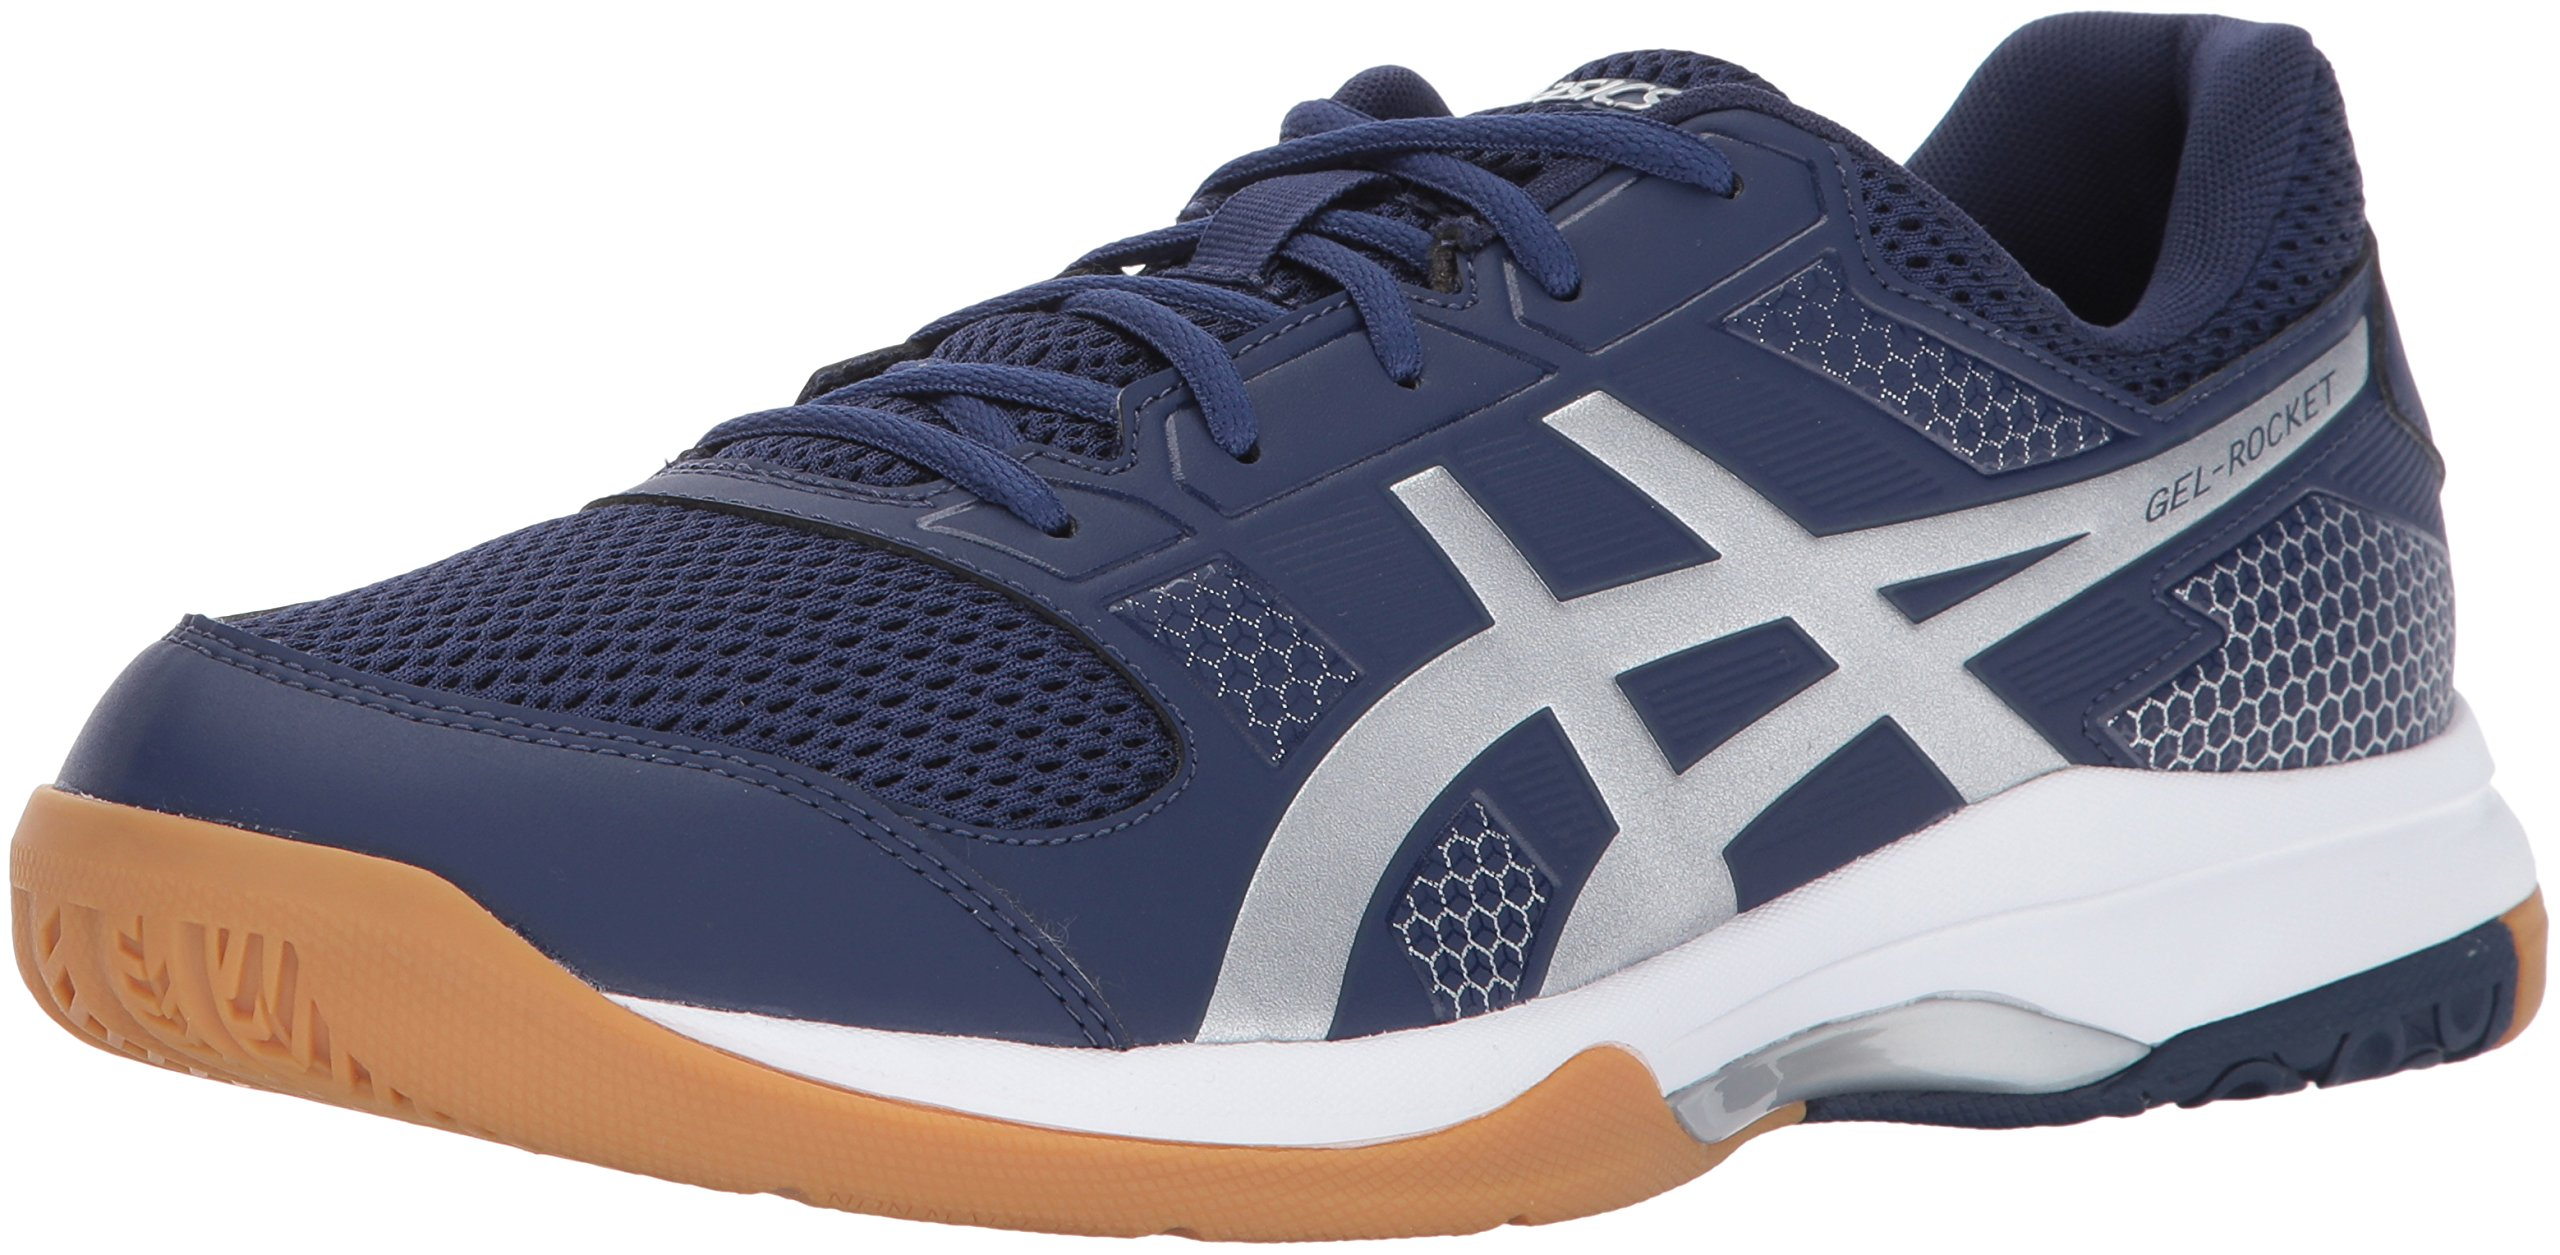 b7bd6cf0d41 ASICS Mens Gel-Rocket 8 Volleyball Shoe, Indigo Blue/Silver/White, 7 Medium  US